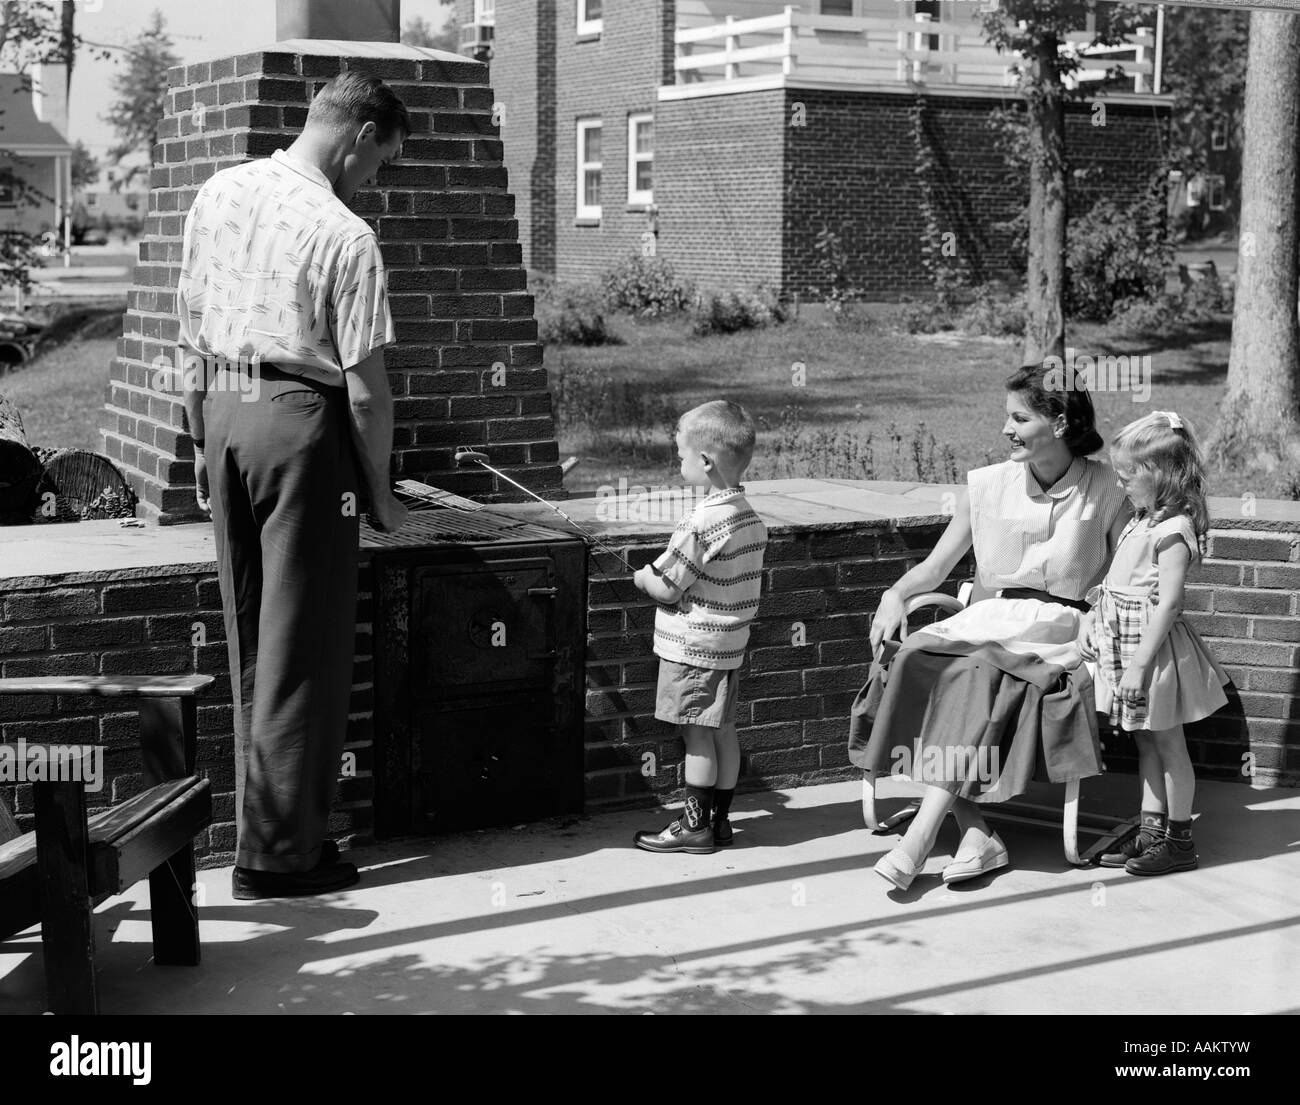 1950s FAMILY ON BRICKED BACKYARD PATIO LITTLE BOY COOKING HOT DOG ON SKEWER - Stock Image